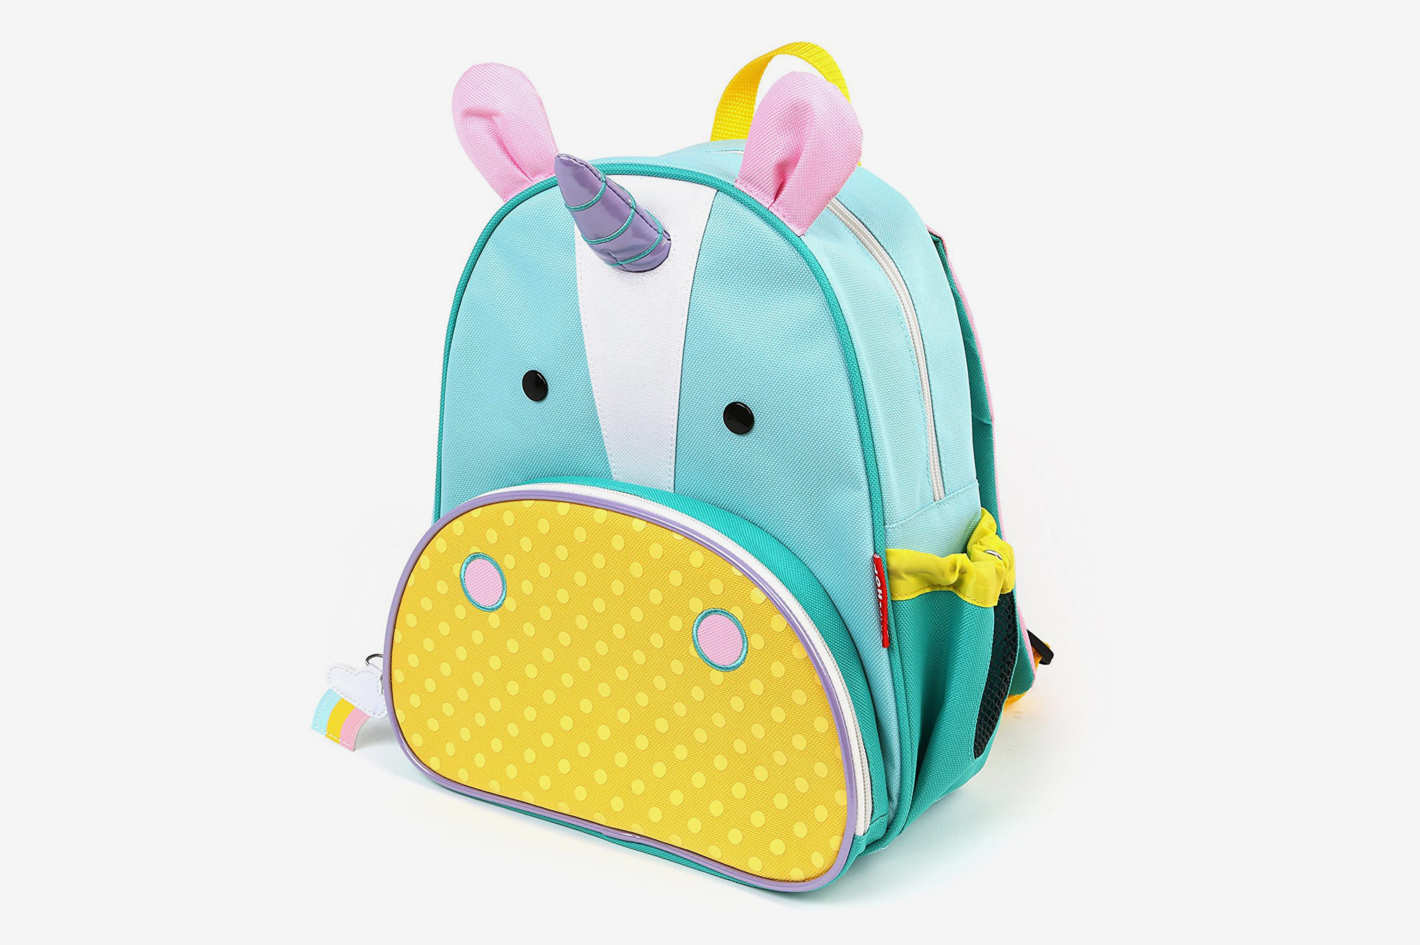 81fe7d0e3 12 Best Backpacks for Girls 2019